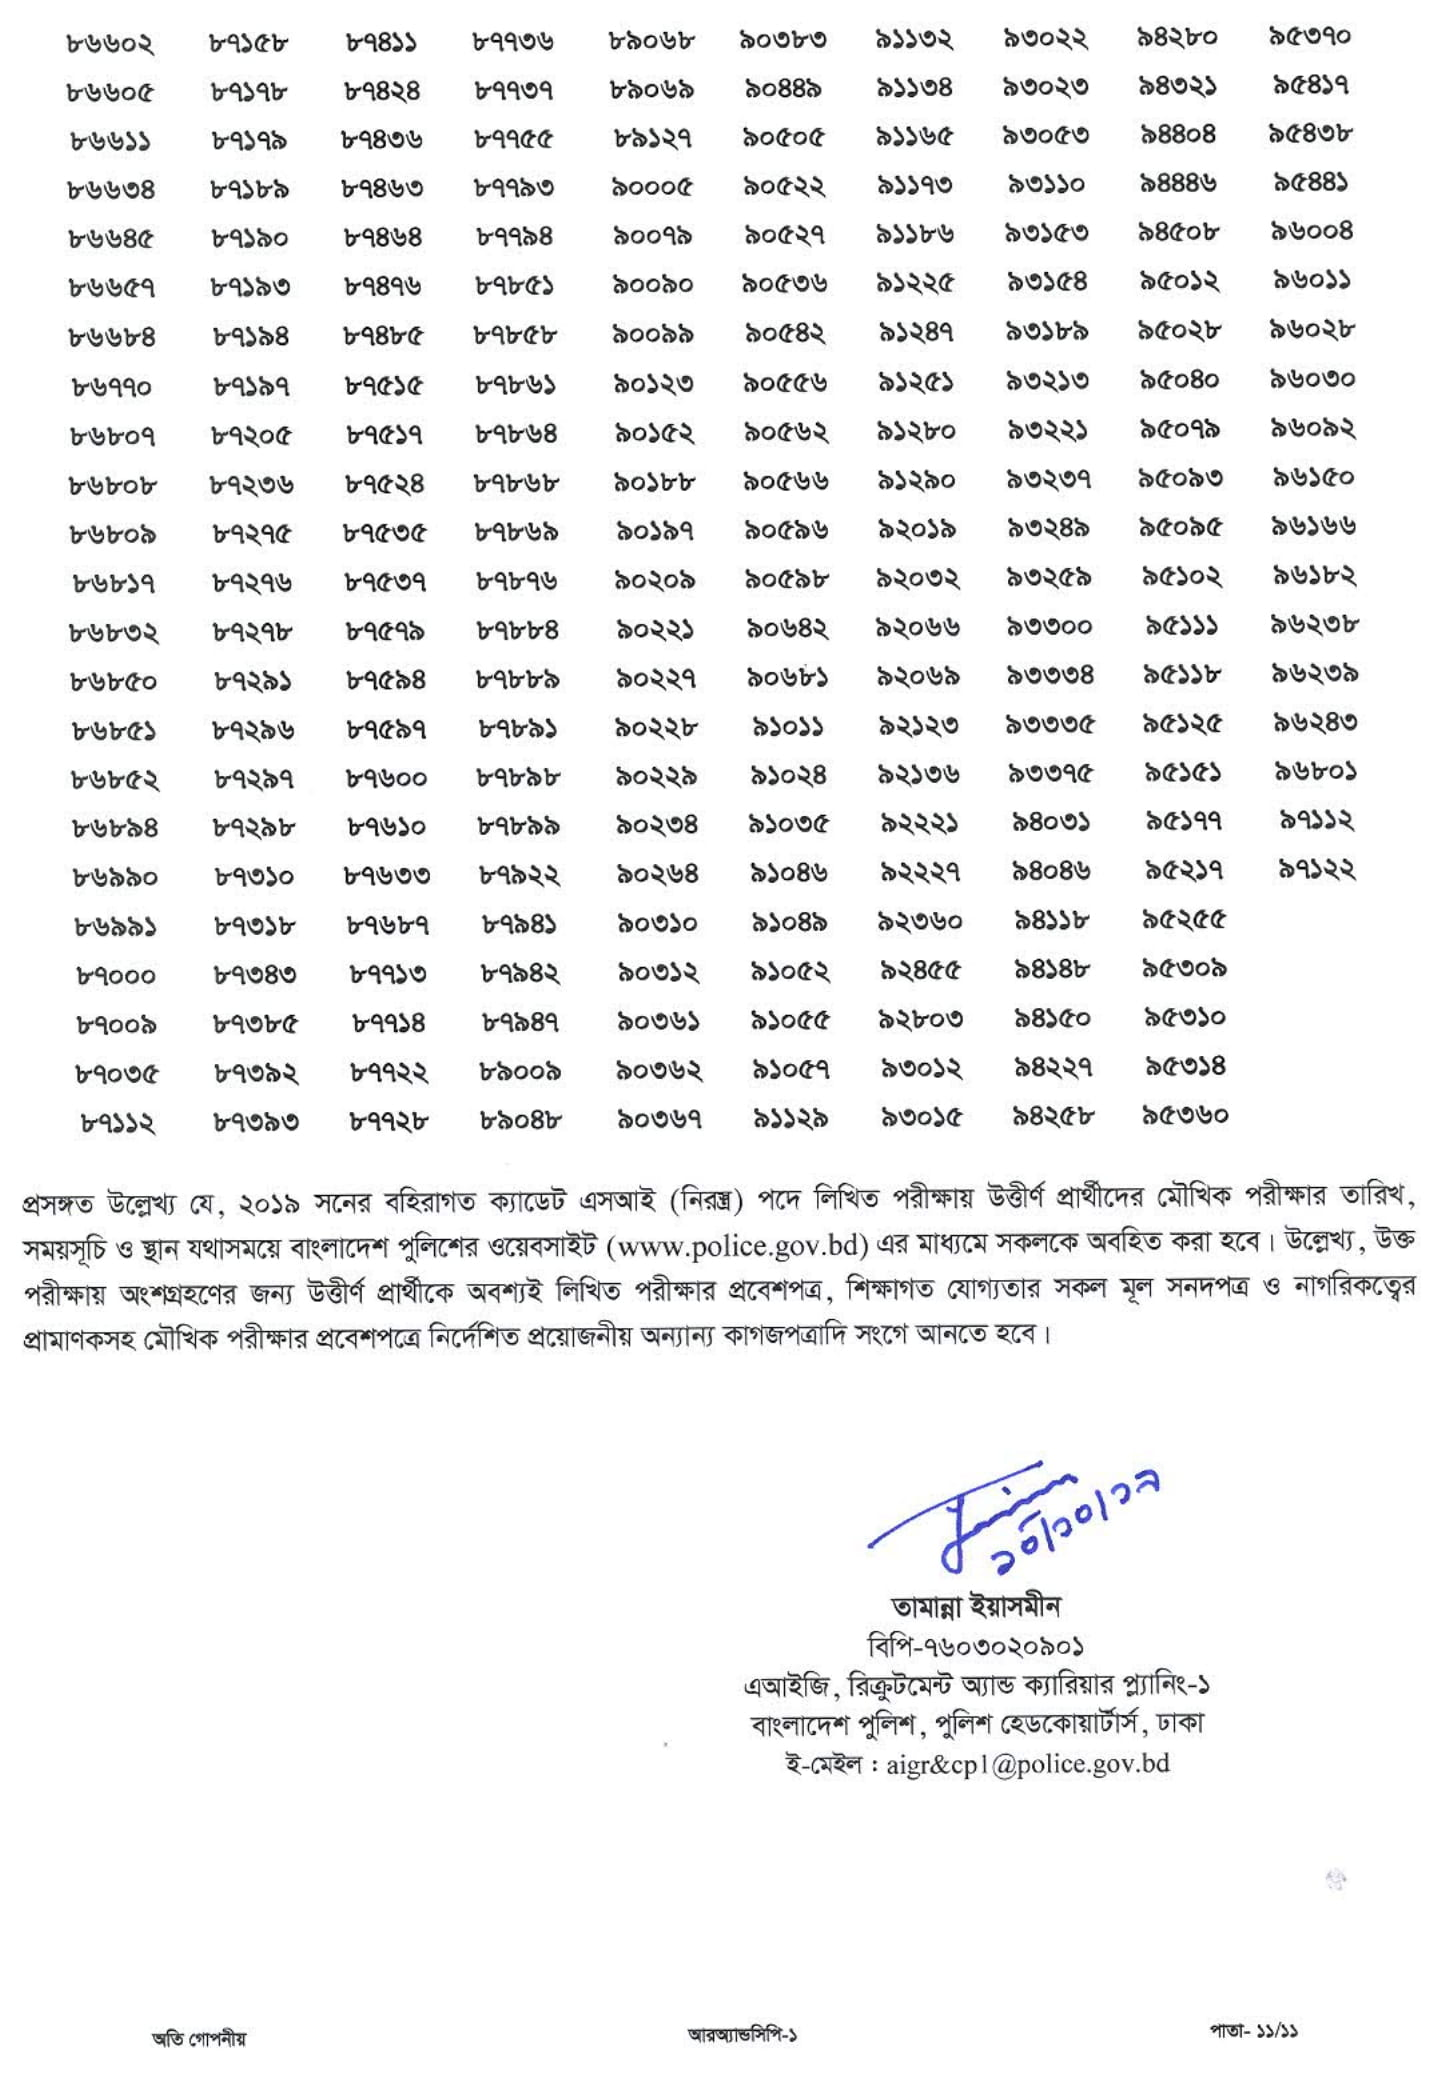 Bangladesh Police SI Post Exam Result